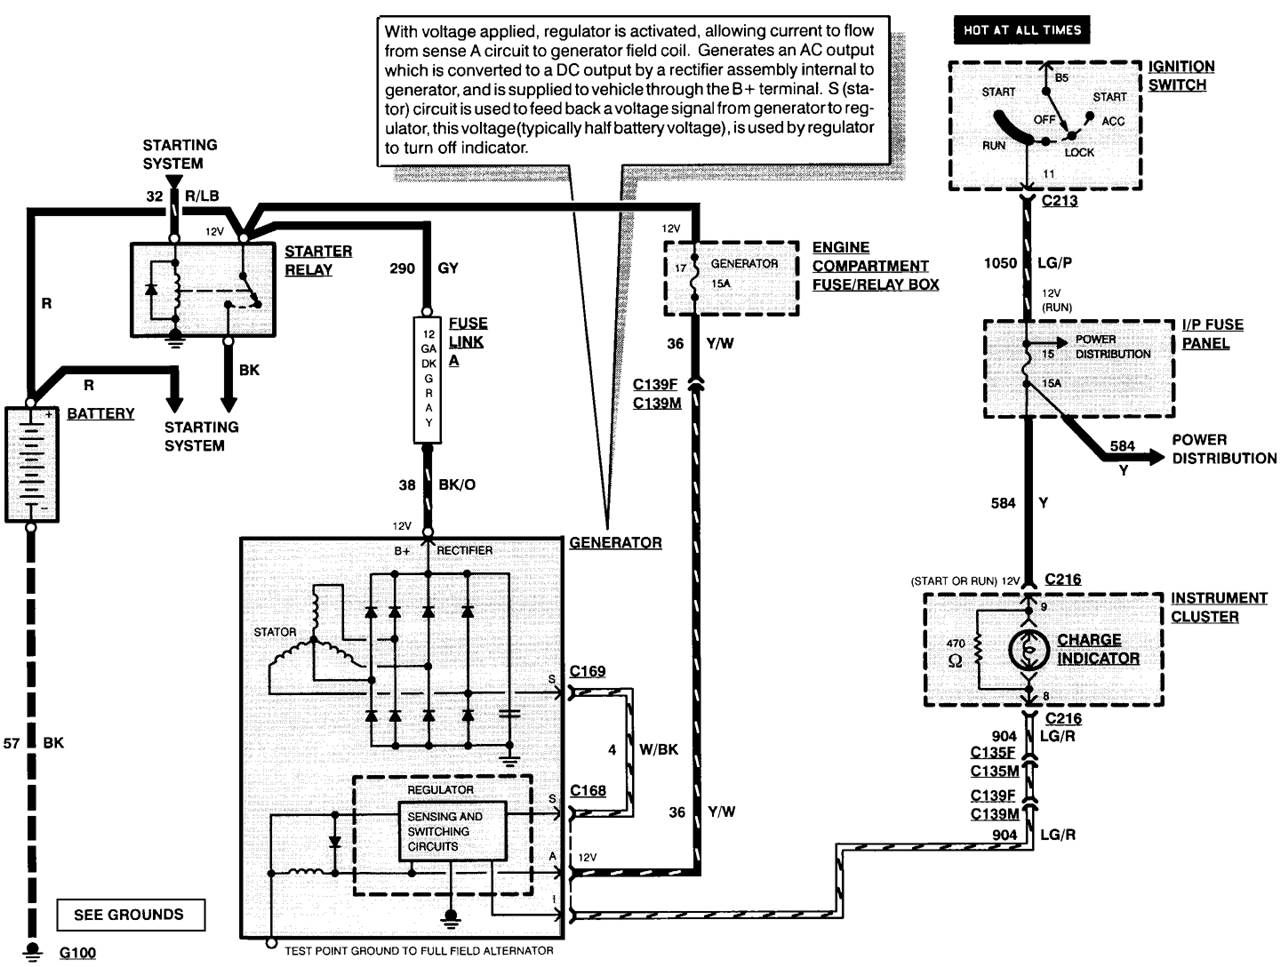 ford f500 wiring diagram ford alternator wiring diagram ford wiring diagrams online